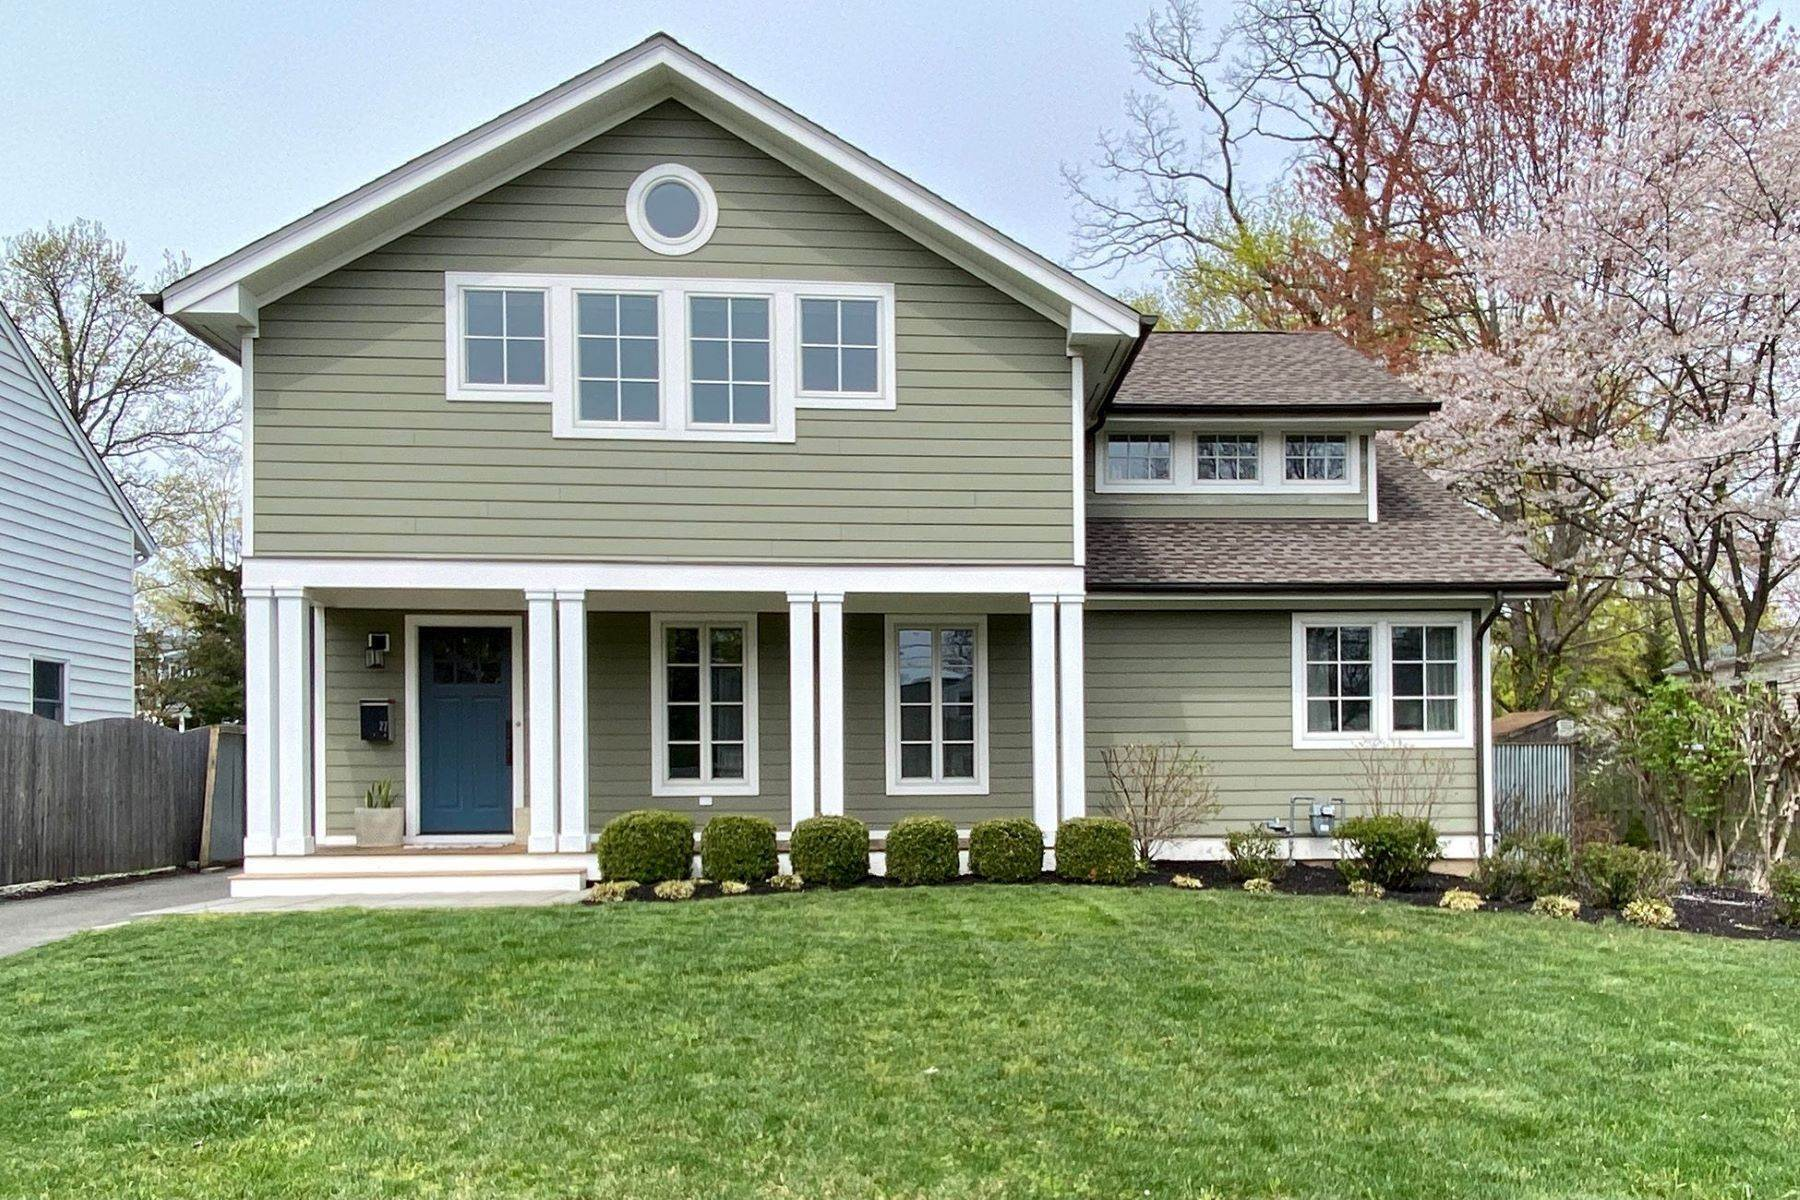 Single Family Homes for Sale at A Modern Transformation by Mercer General Works 22 Fisher Avenue, Princeton, New Jersey 08540 United States